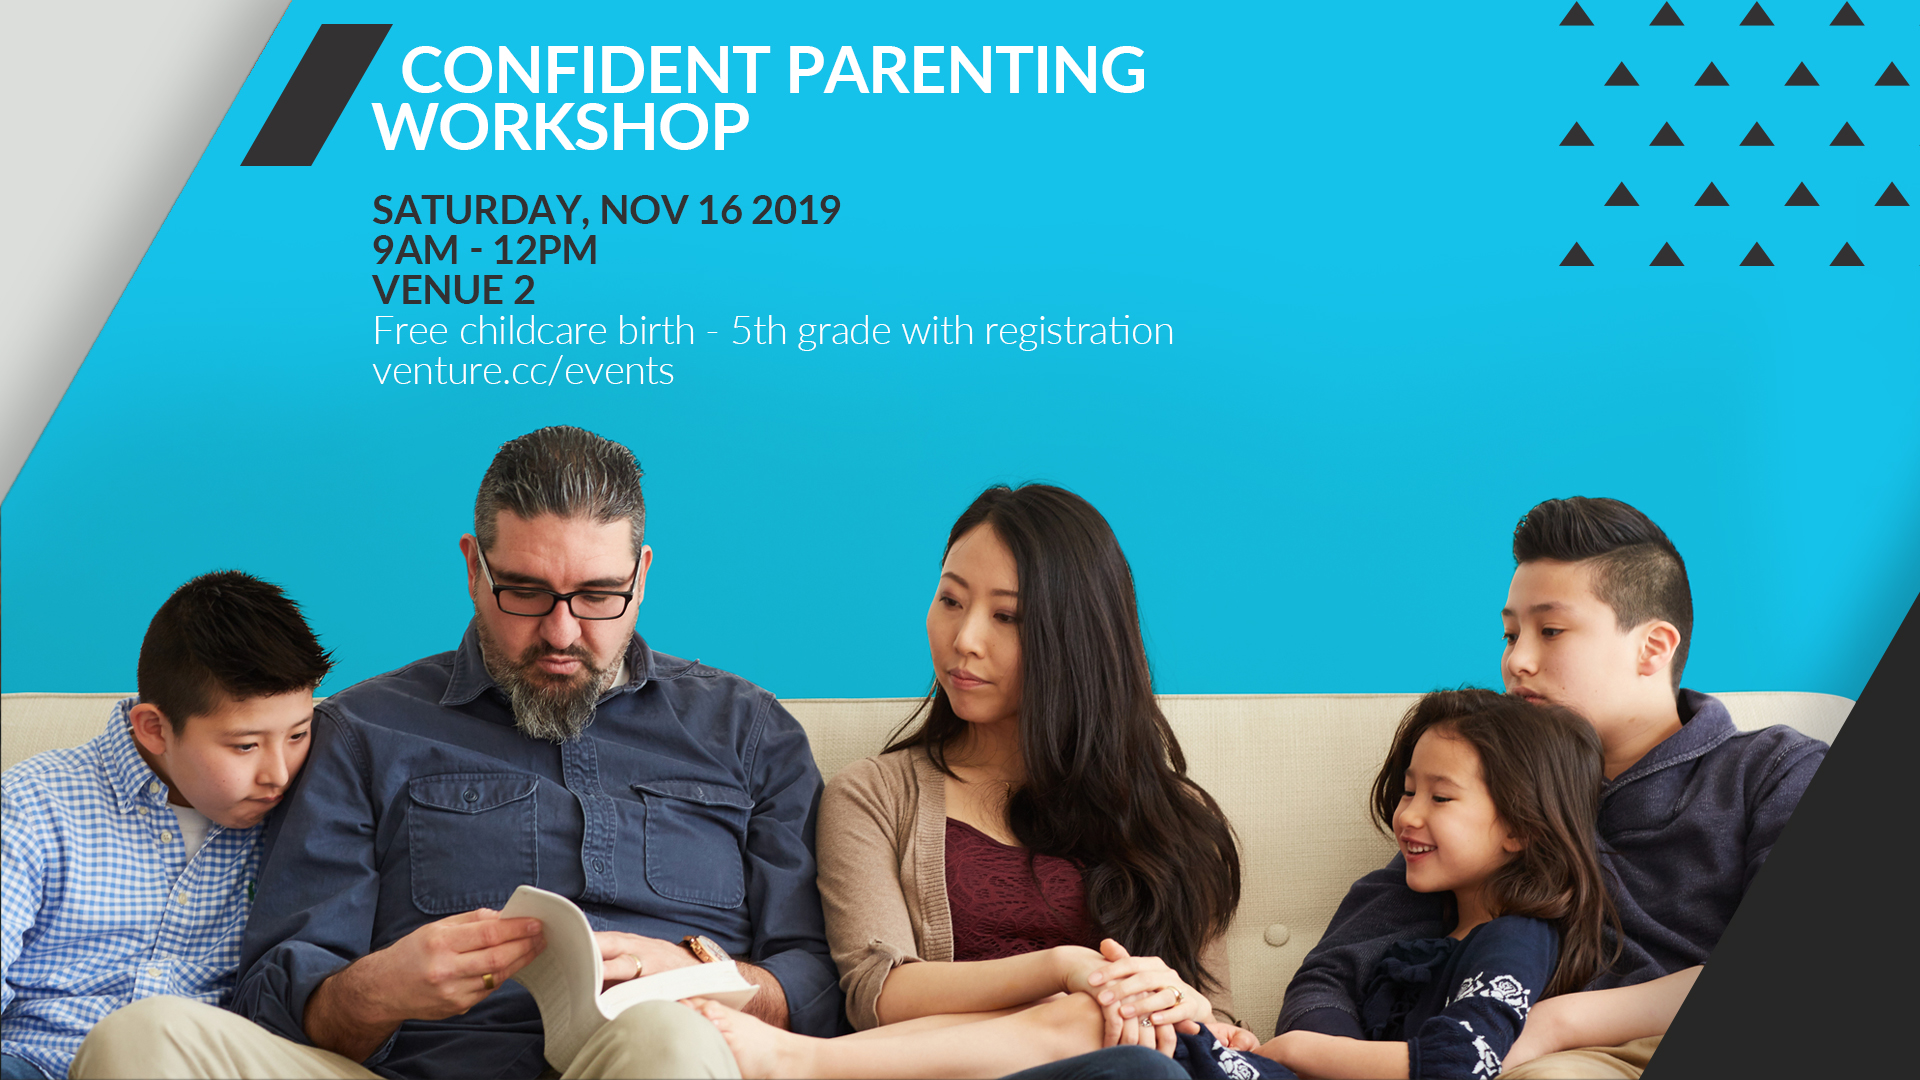 Link to Confident Parenting Workshop page at https://venture.cc/events/event-detail/rockevents/97/130/